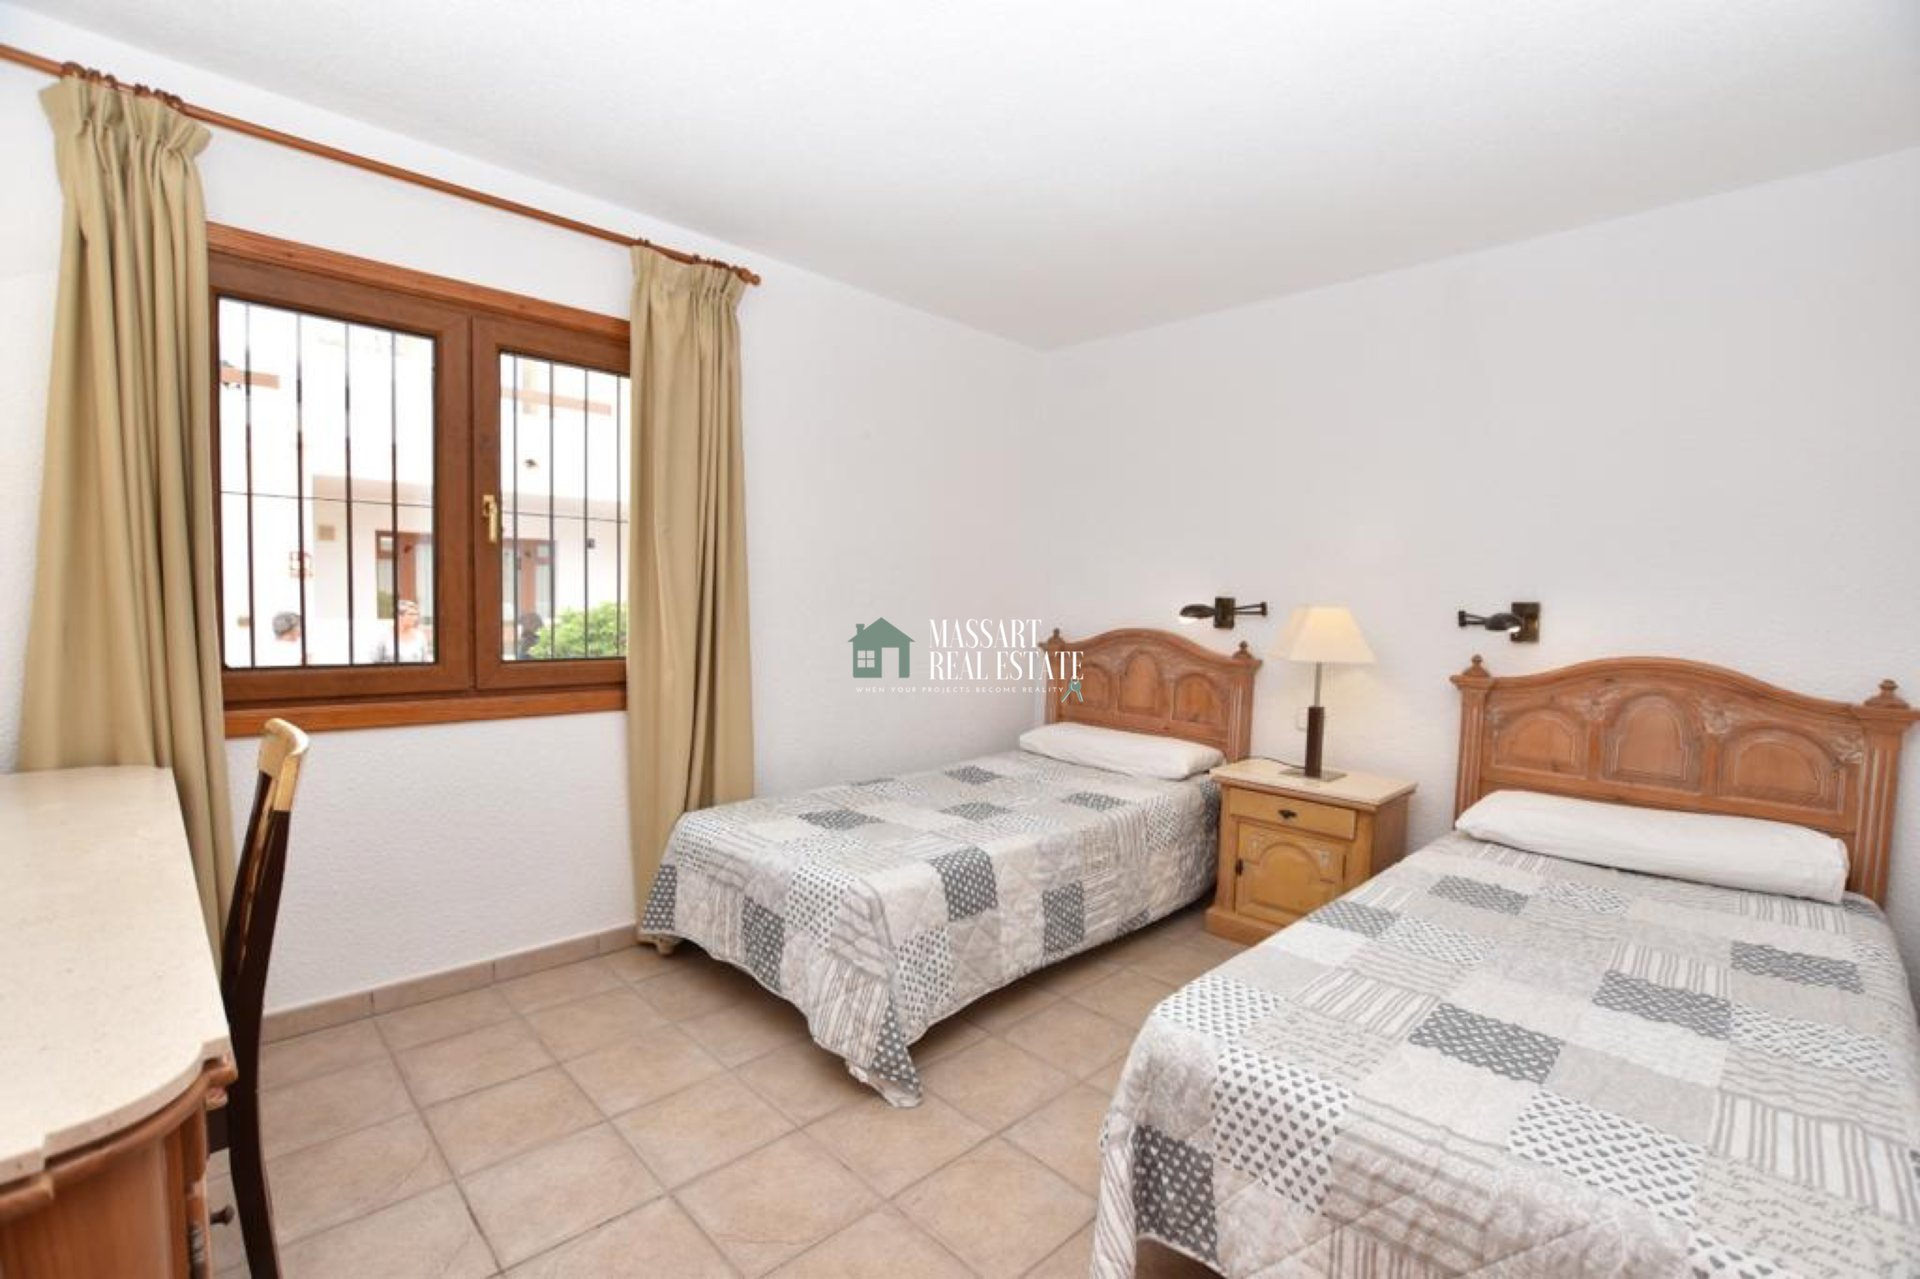 75 m2 furnished apartment located in the center of Los Cristianos, in the popular residential complex Beverly Hills.